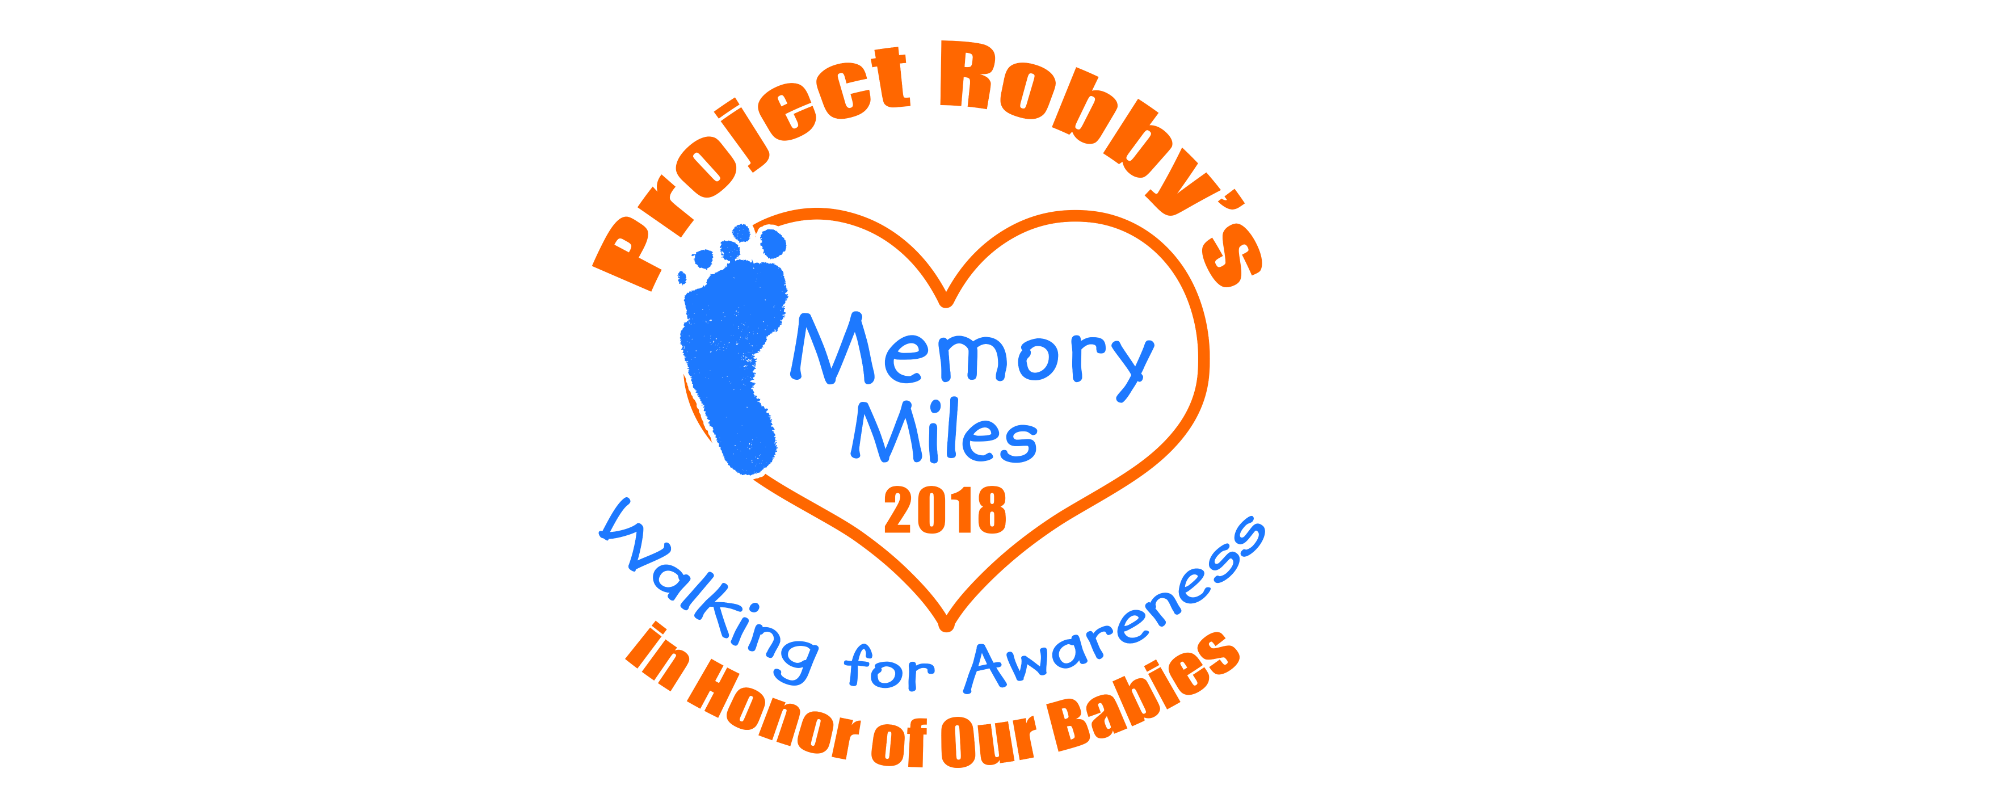 ProjectRobbysMemoryMiles